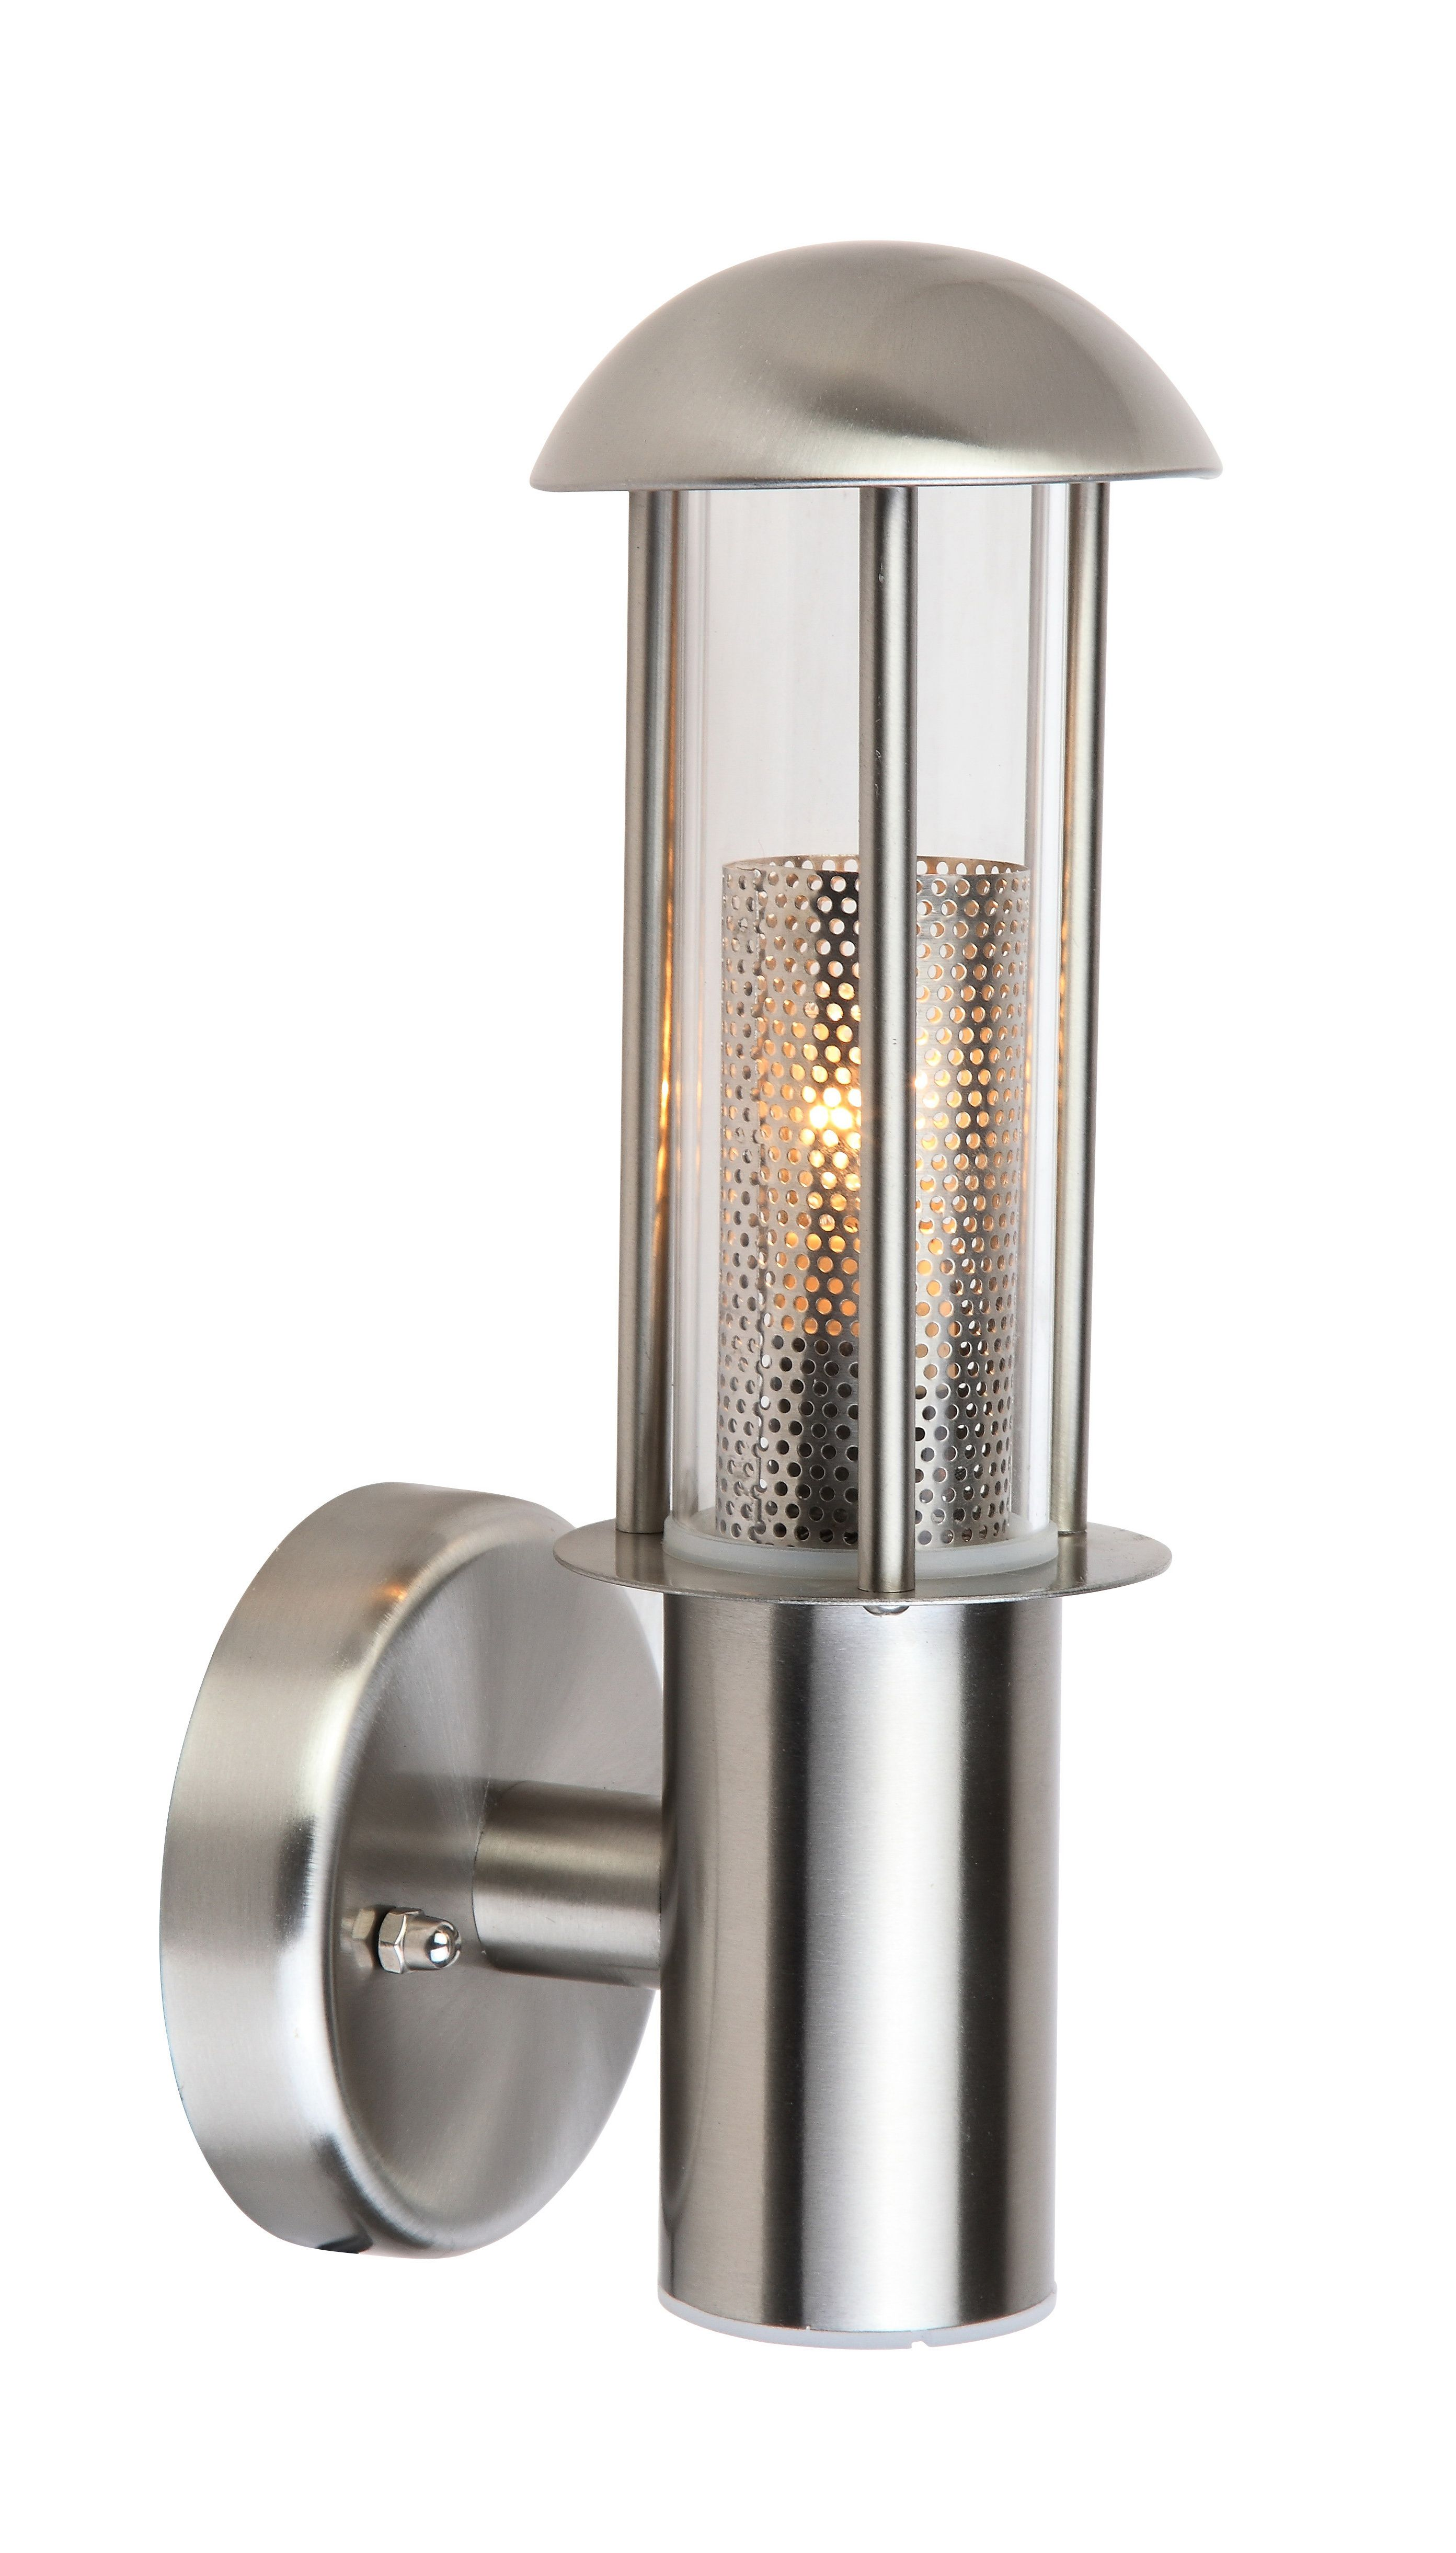 Blooma Tellumo Stainless Steel Silver Mains Powered External Wall Light